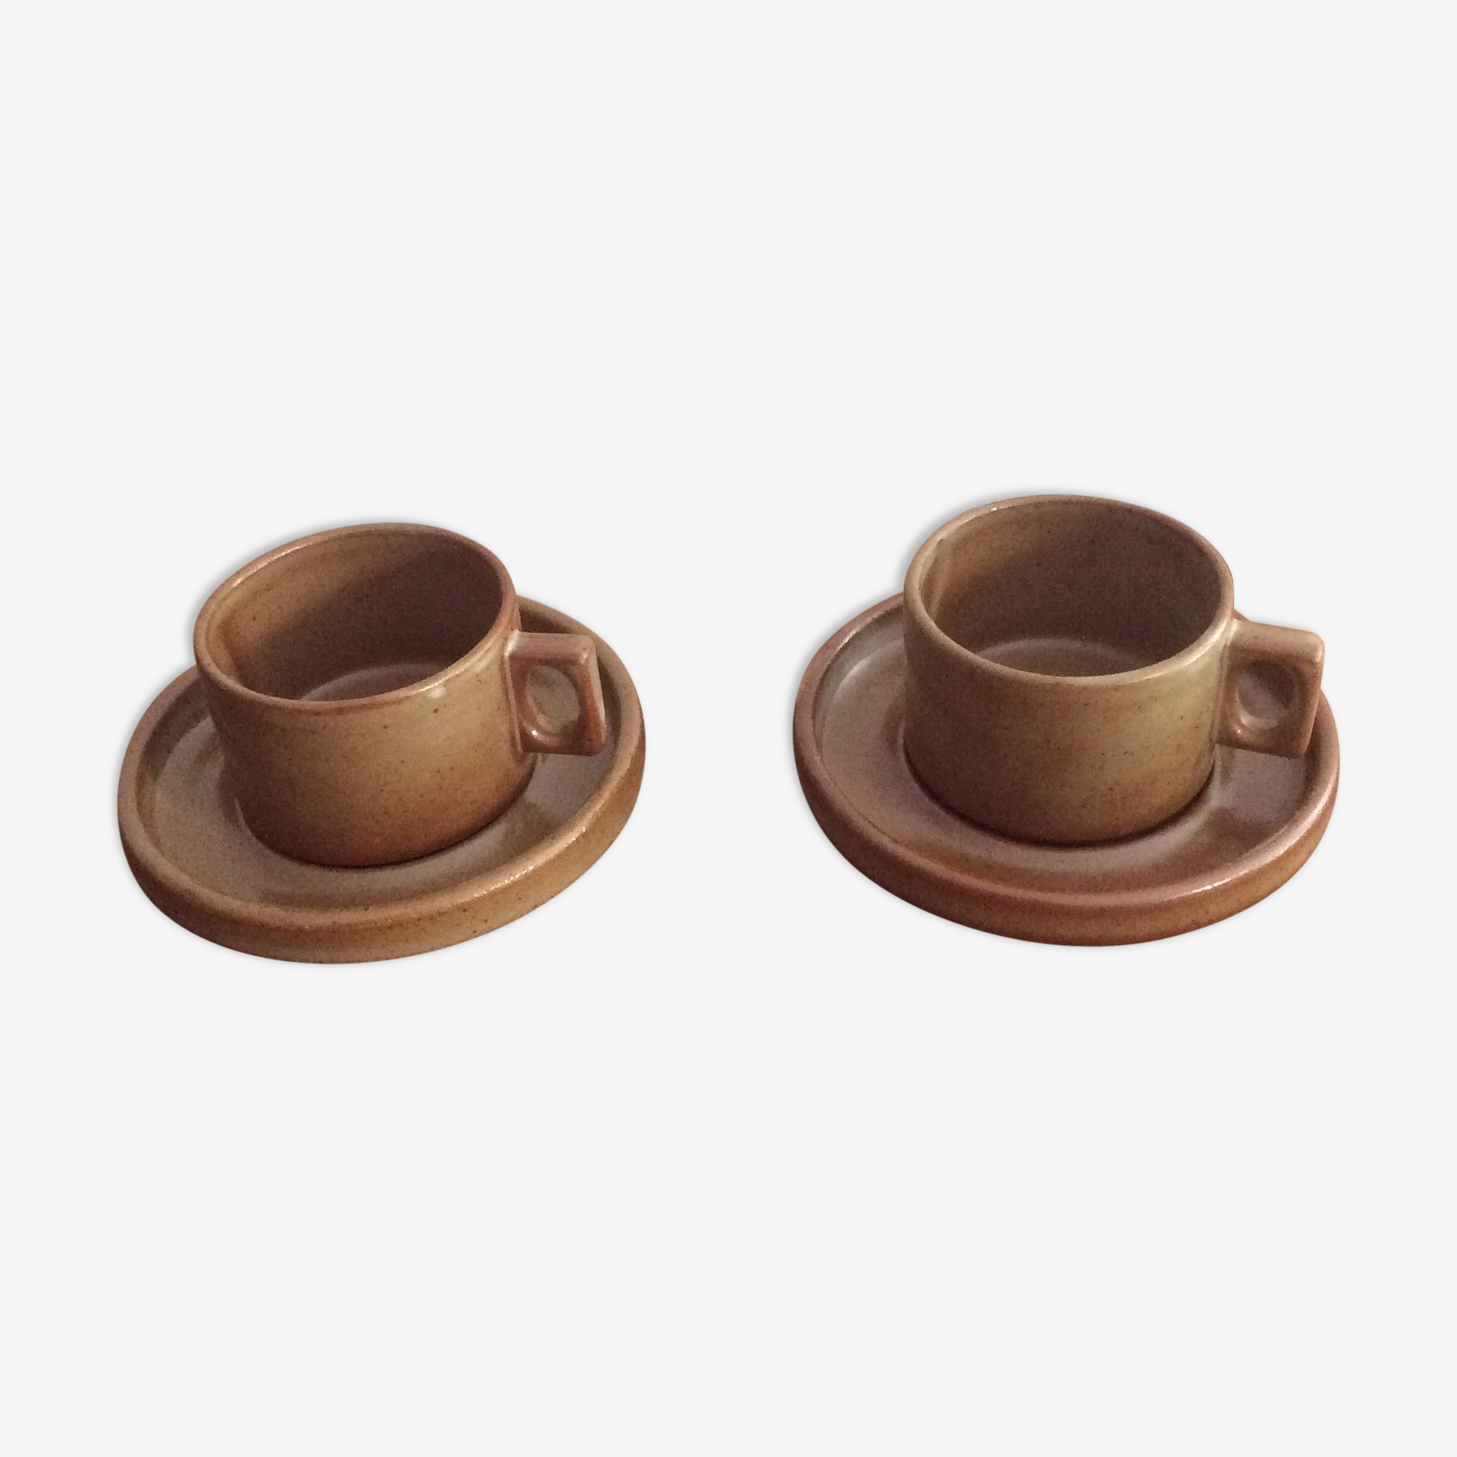 Two cups and saucers Brenne sandstone